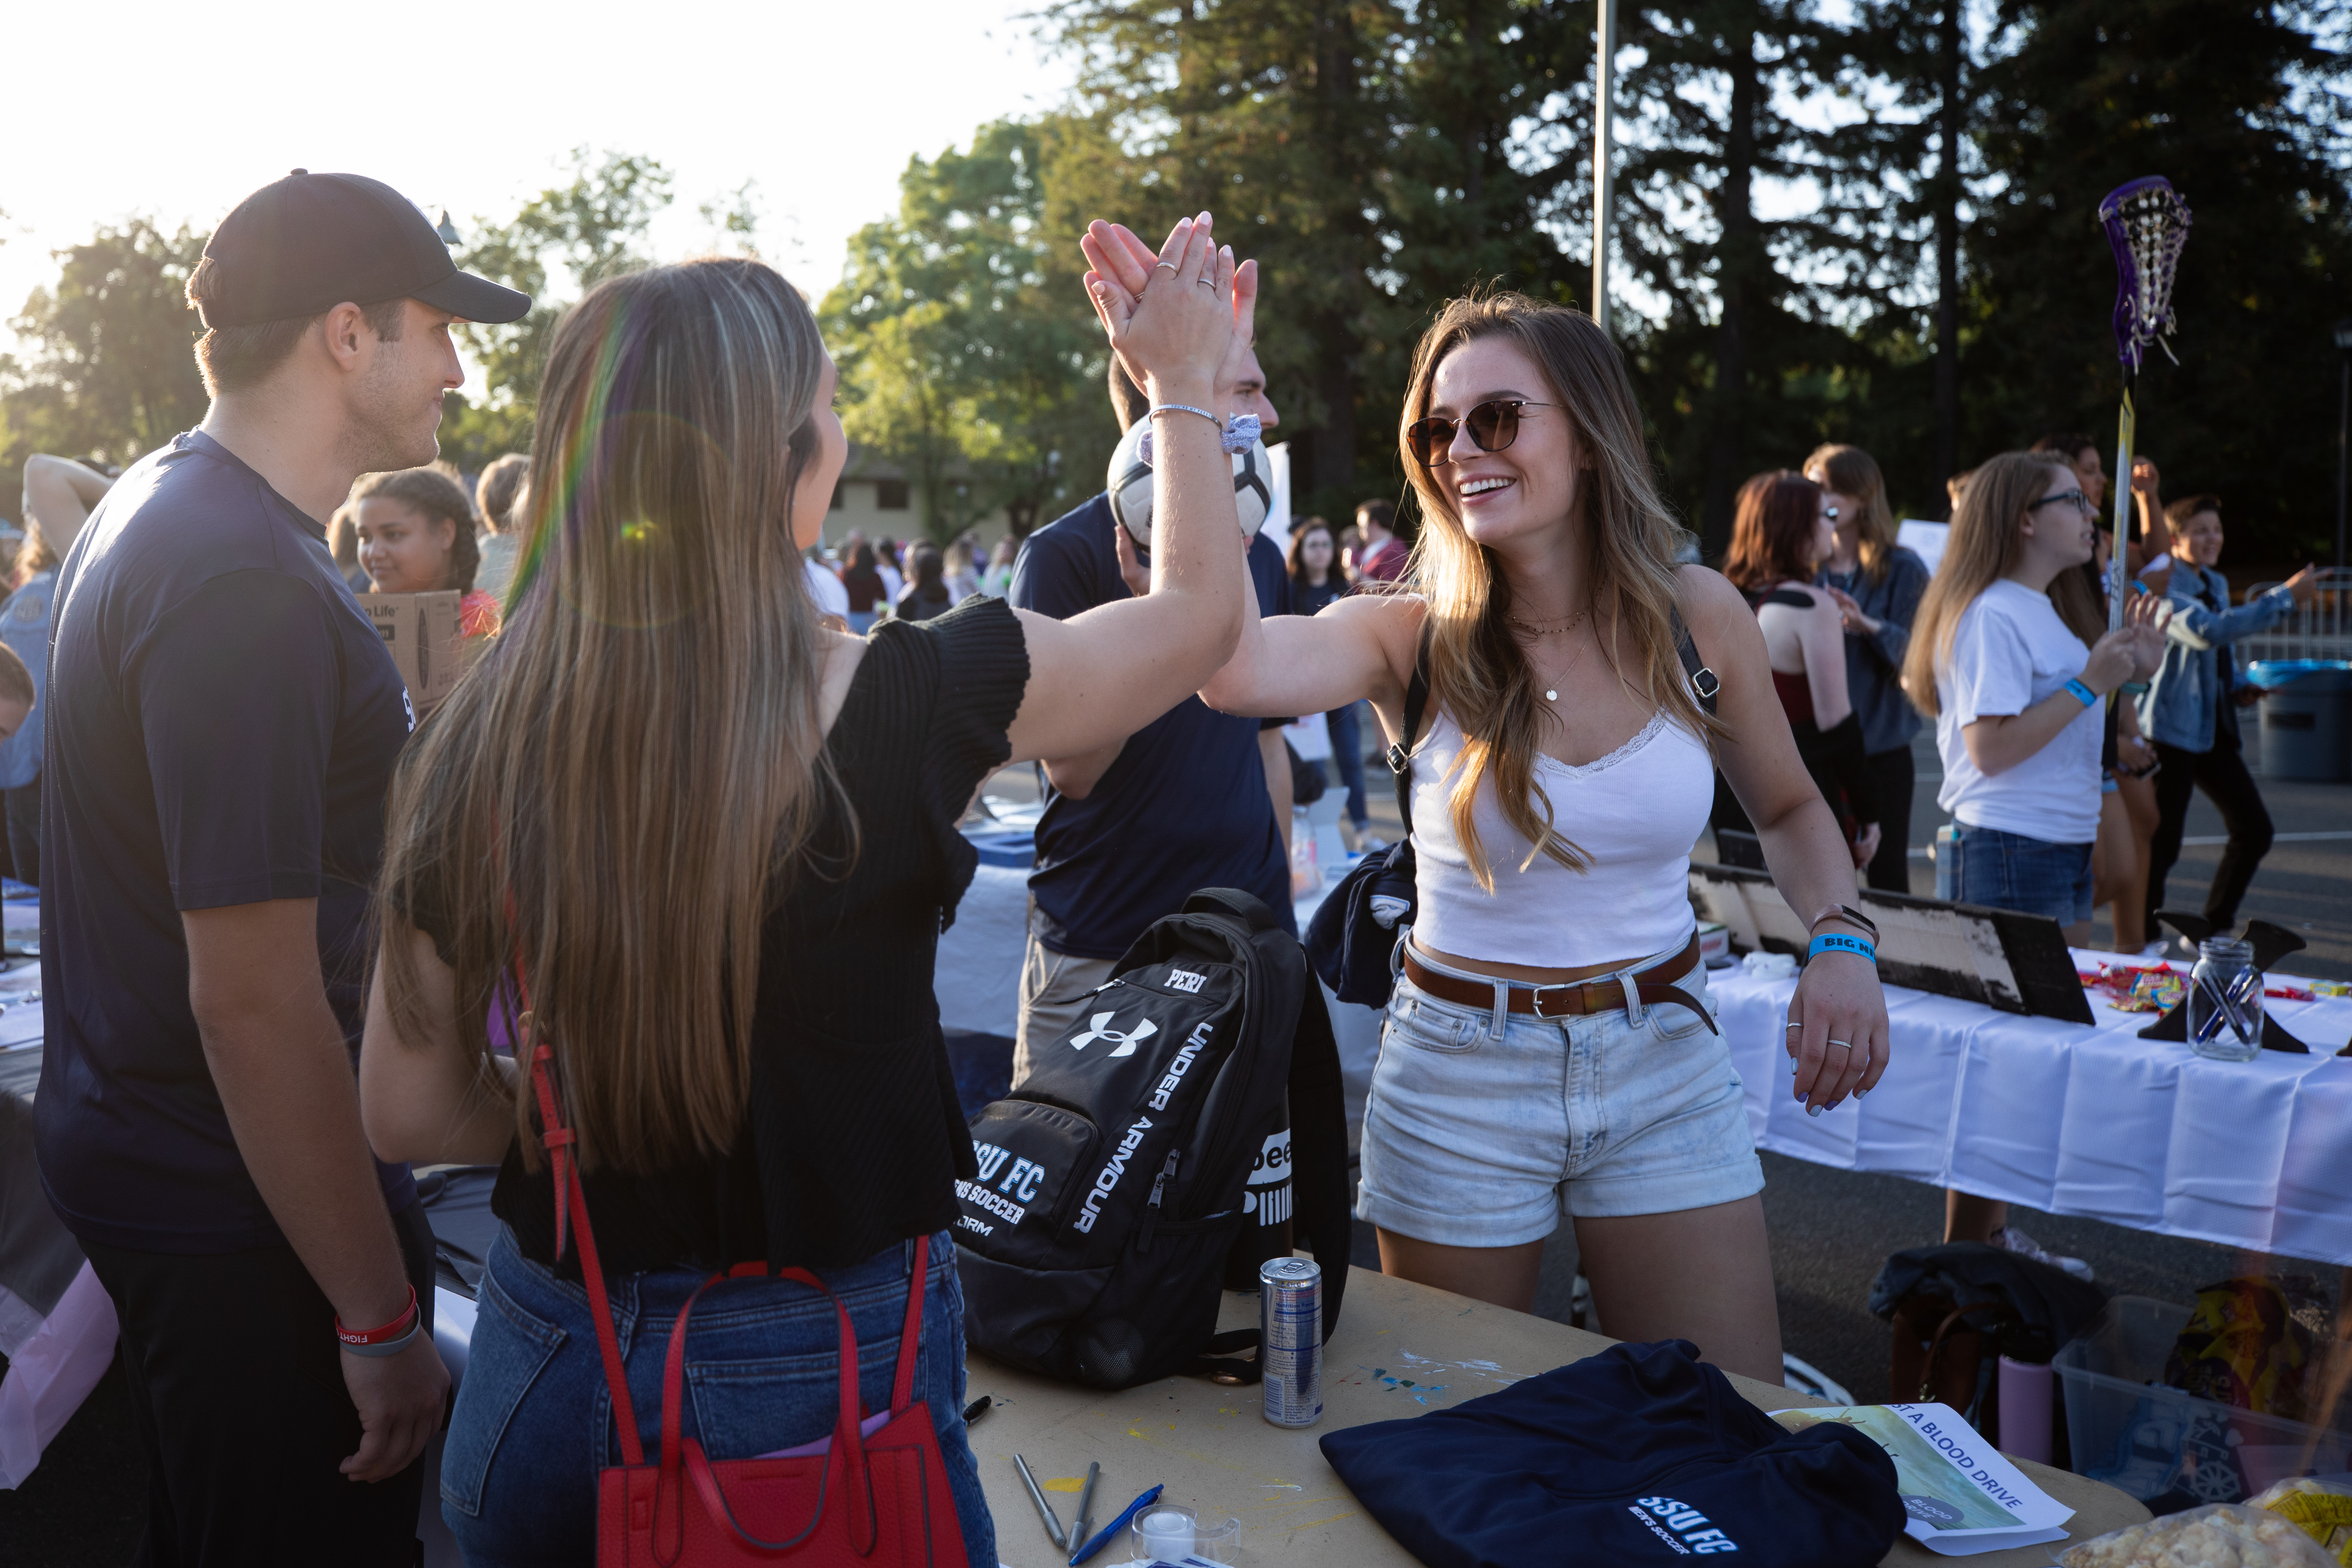 Students in a crowded outdoor setting smiling and giving each other high-fives